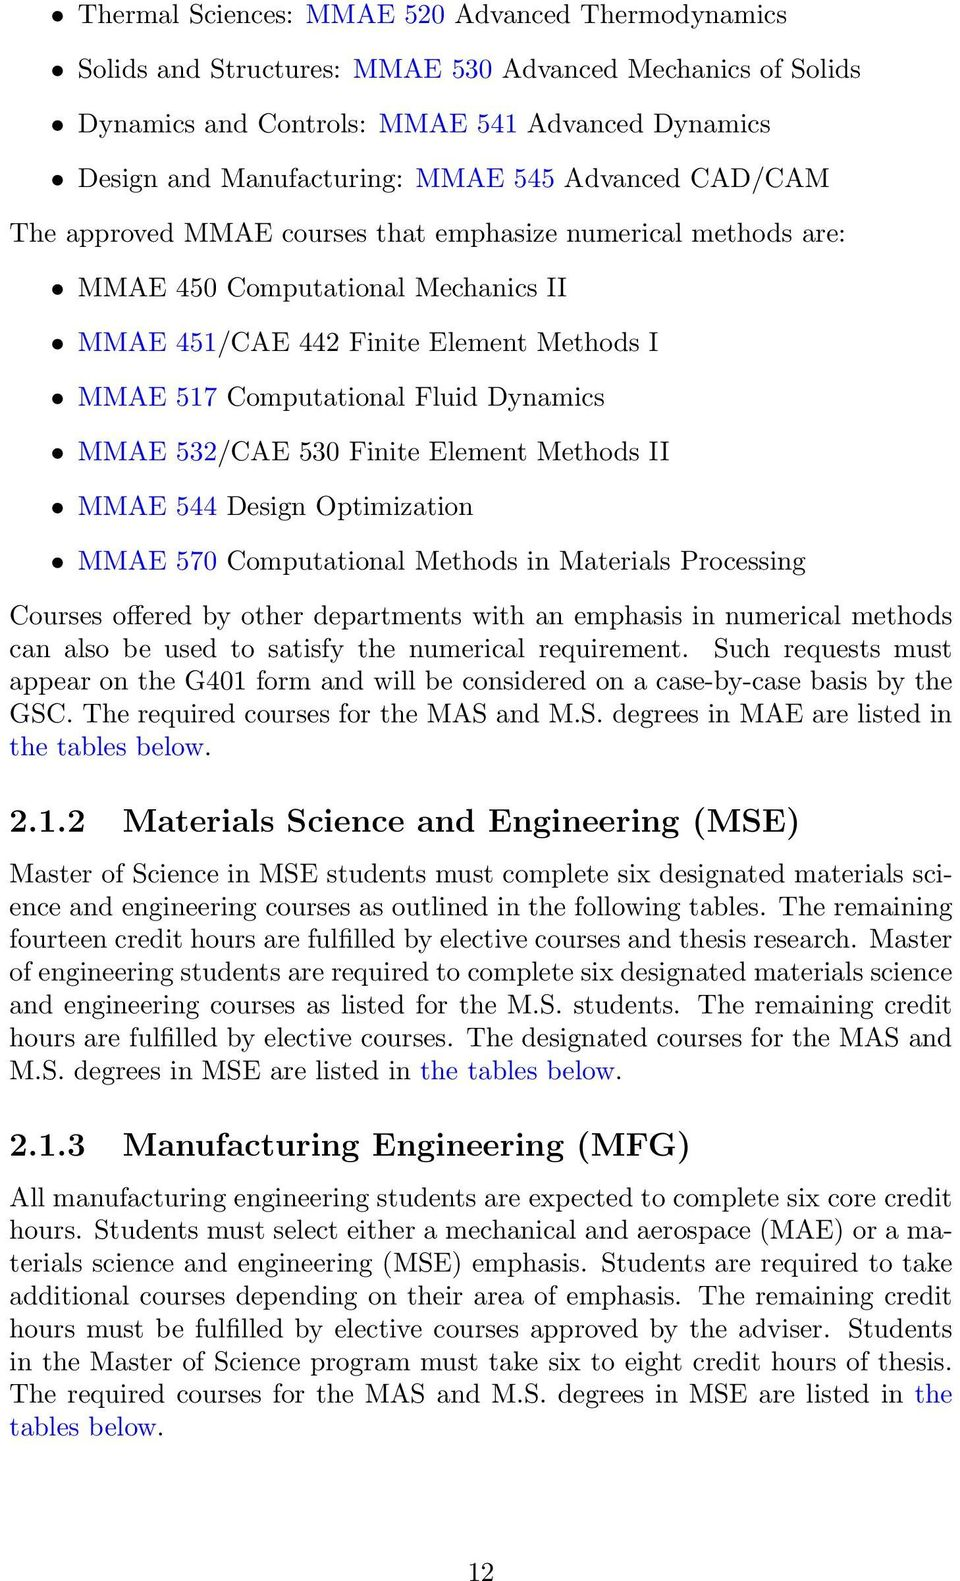 MMAE 532/CAE 530 Finite Element Methods II MMAE 544 Design Optimization MMAE 570 Computational Methods in Materials Processing Courses offered by other departments with an emphasis in numerical